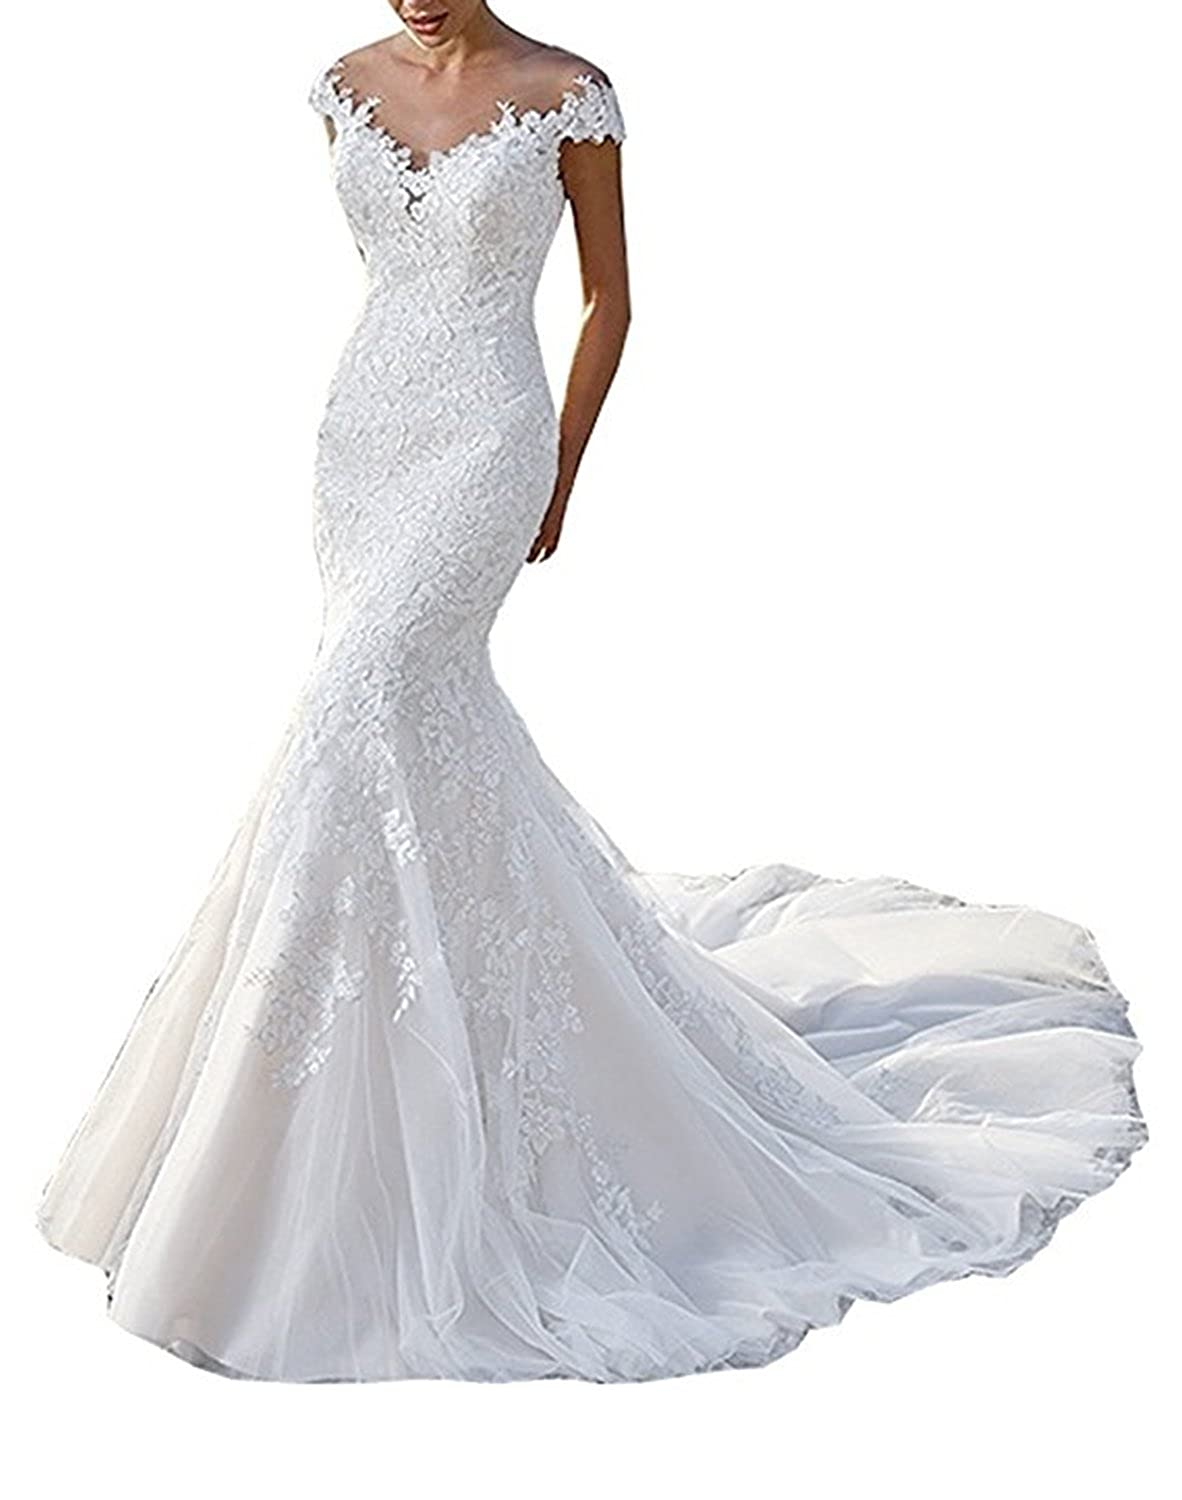 Beautbride Womens Sheer Neck Mermaid Lace Wedding Dress Cap Sleeve